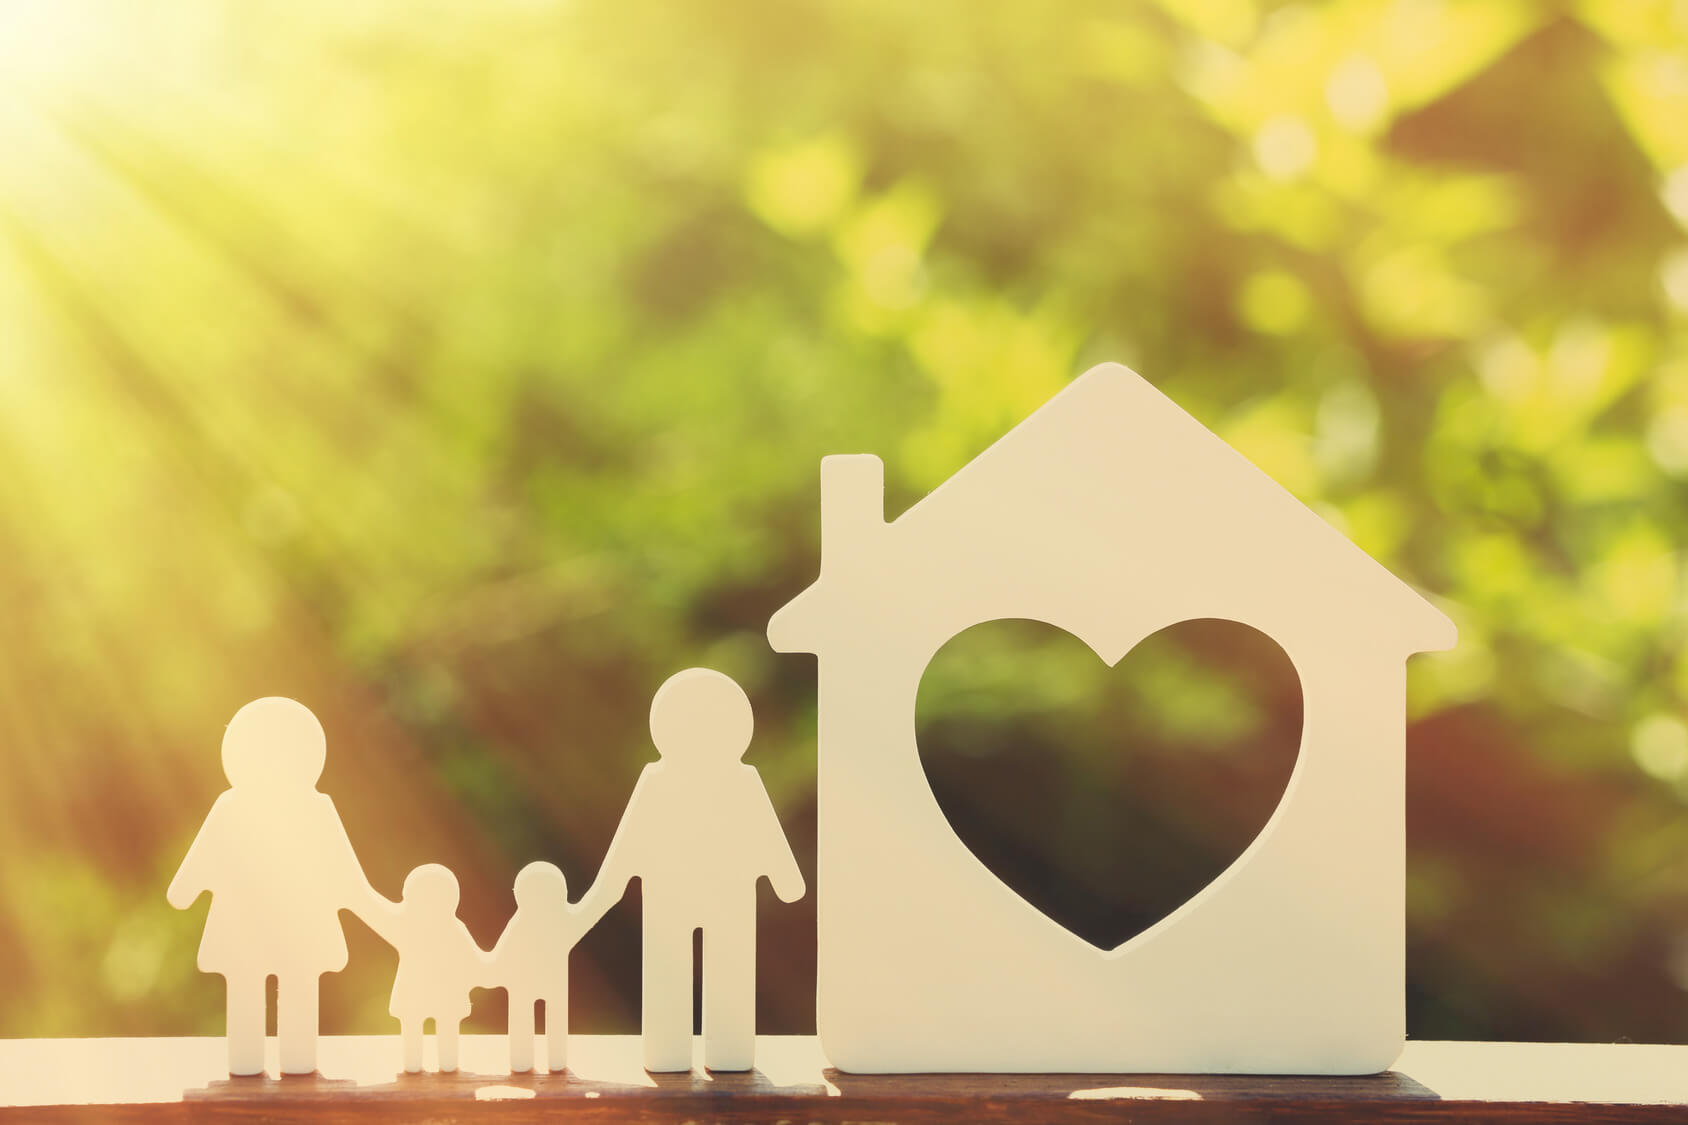 Family Cutout Heart Fotolia 101077810 - Vocabulary To Talk About Family In English